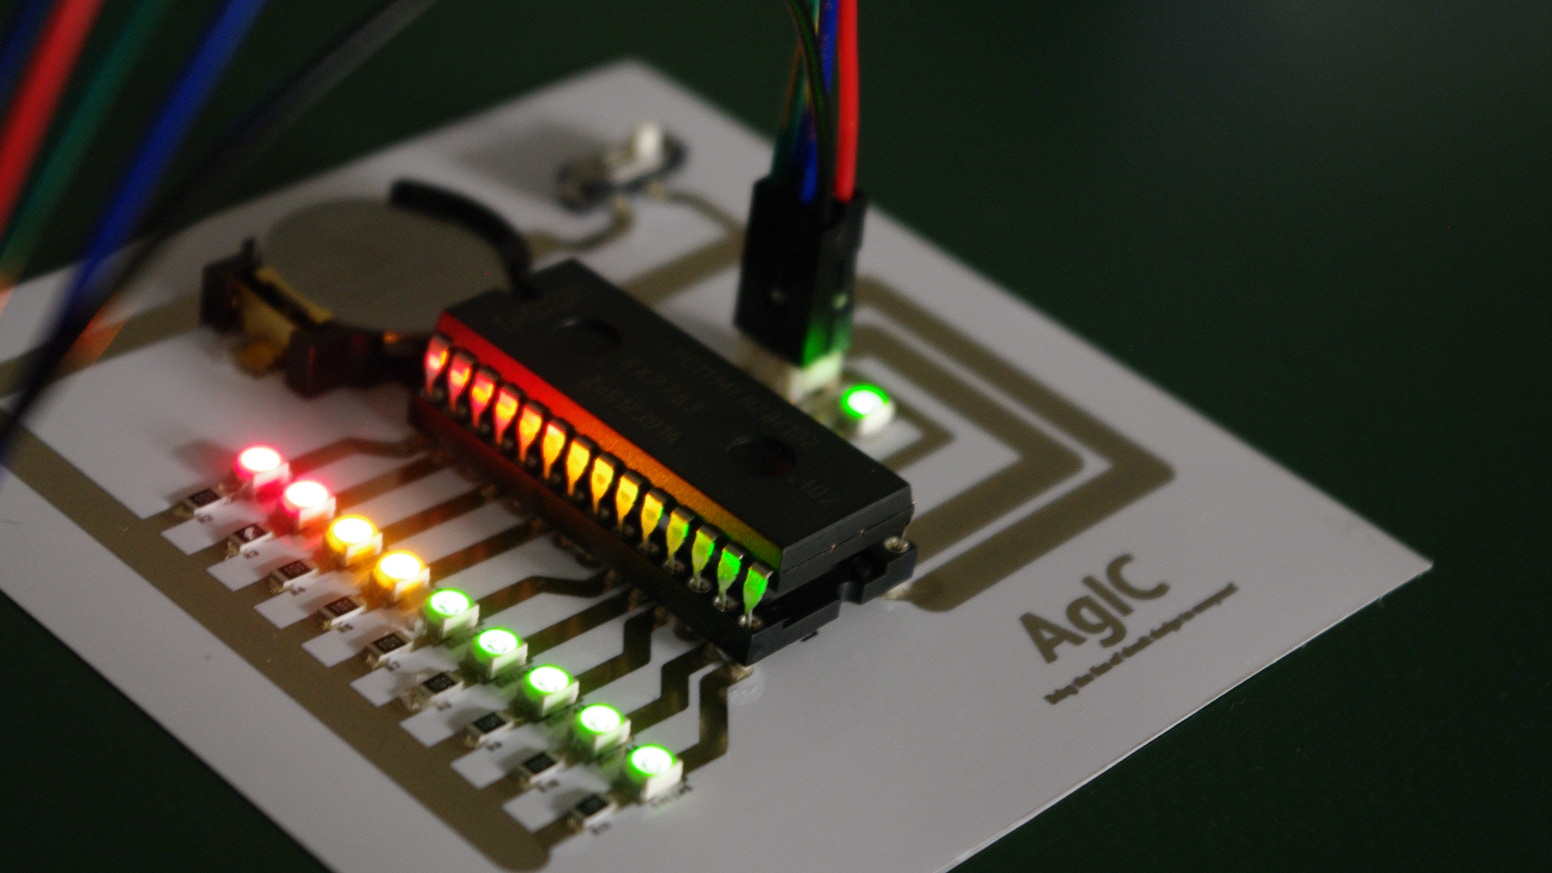 Agic Print Printing Circuit Boards With Home Printers By Inc Usb Control Board Wiring Diagram